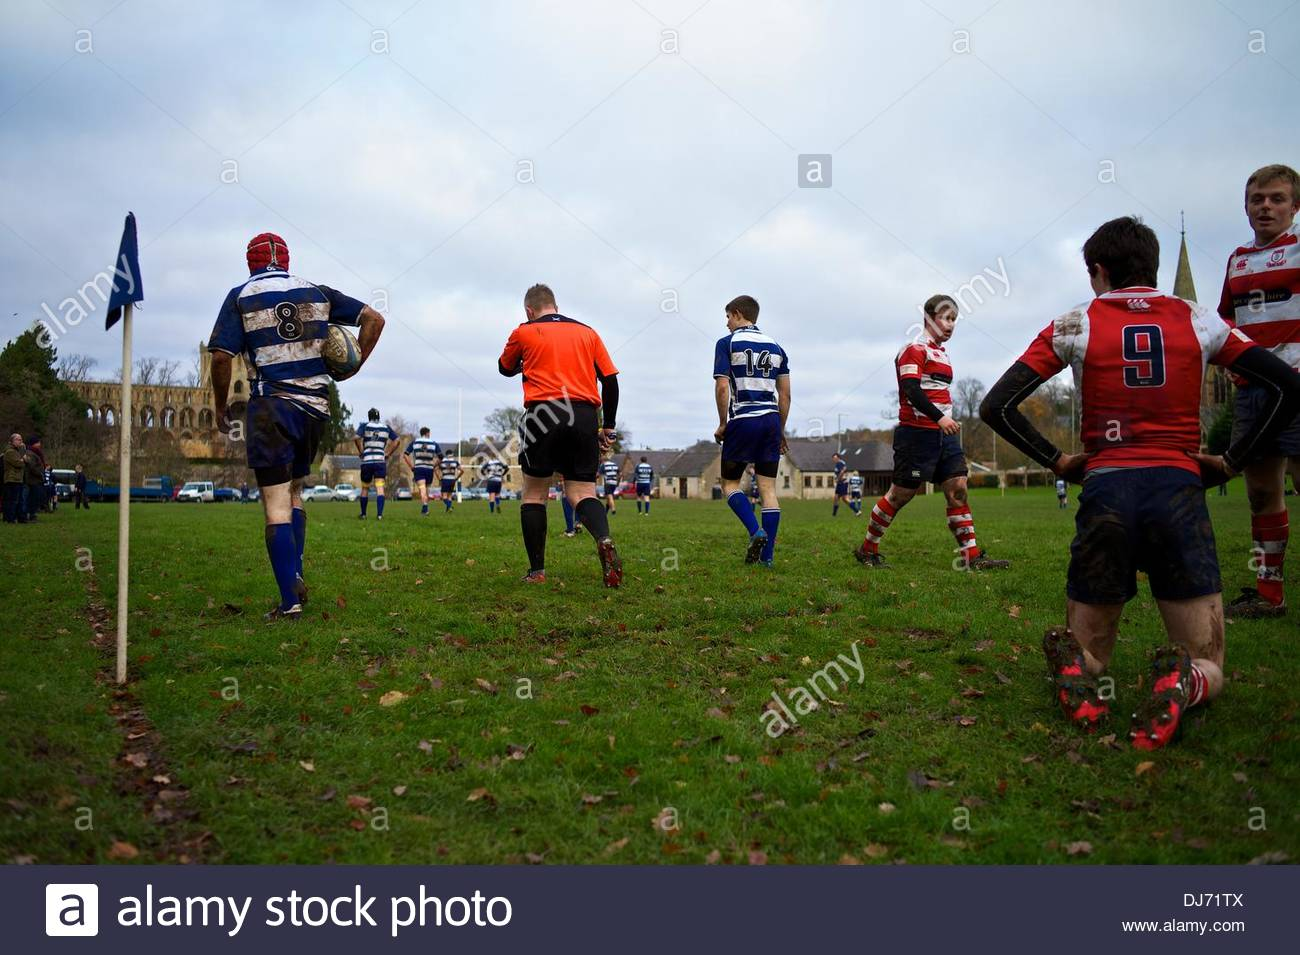 Jedburgh, Scotland, 23rd November - Local youth side Jed Thistle hammered Peebles Colts 66-7. Grass roots rugby union remains a fundamental element of Scottish Borders identity. Credit:  Chris Strickland/Alamy Live News - Stock Image